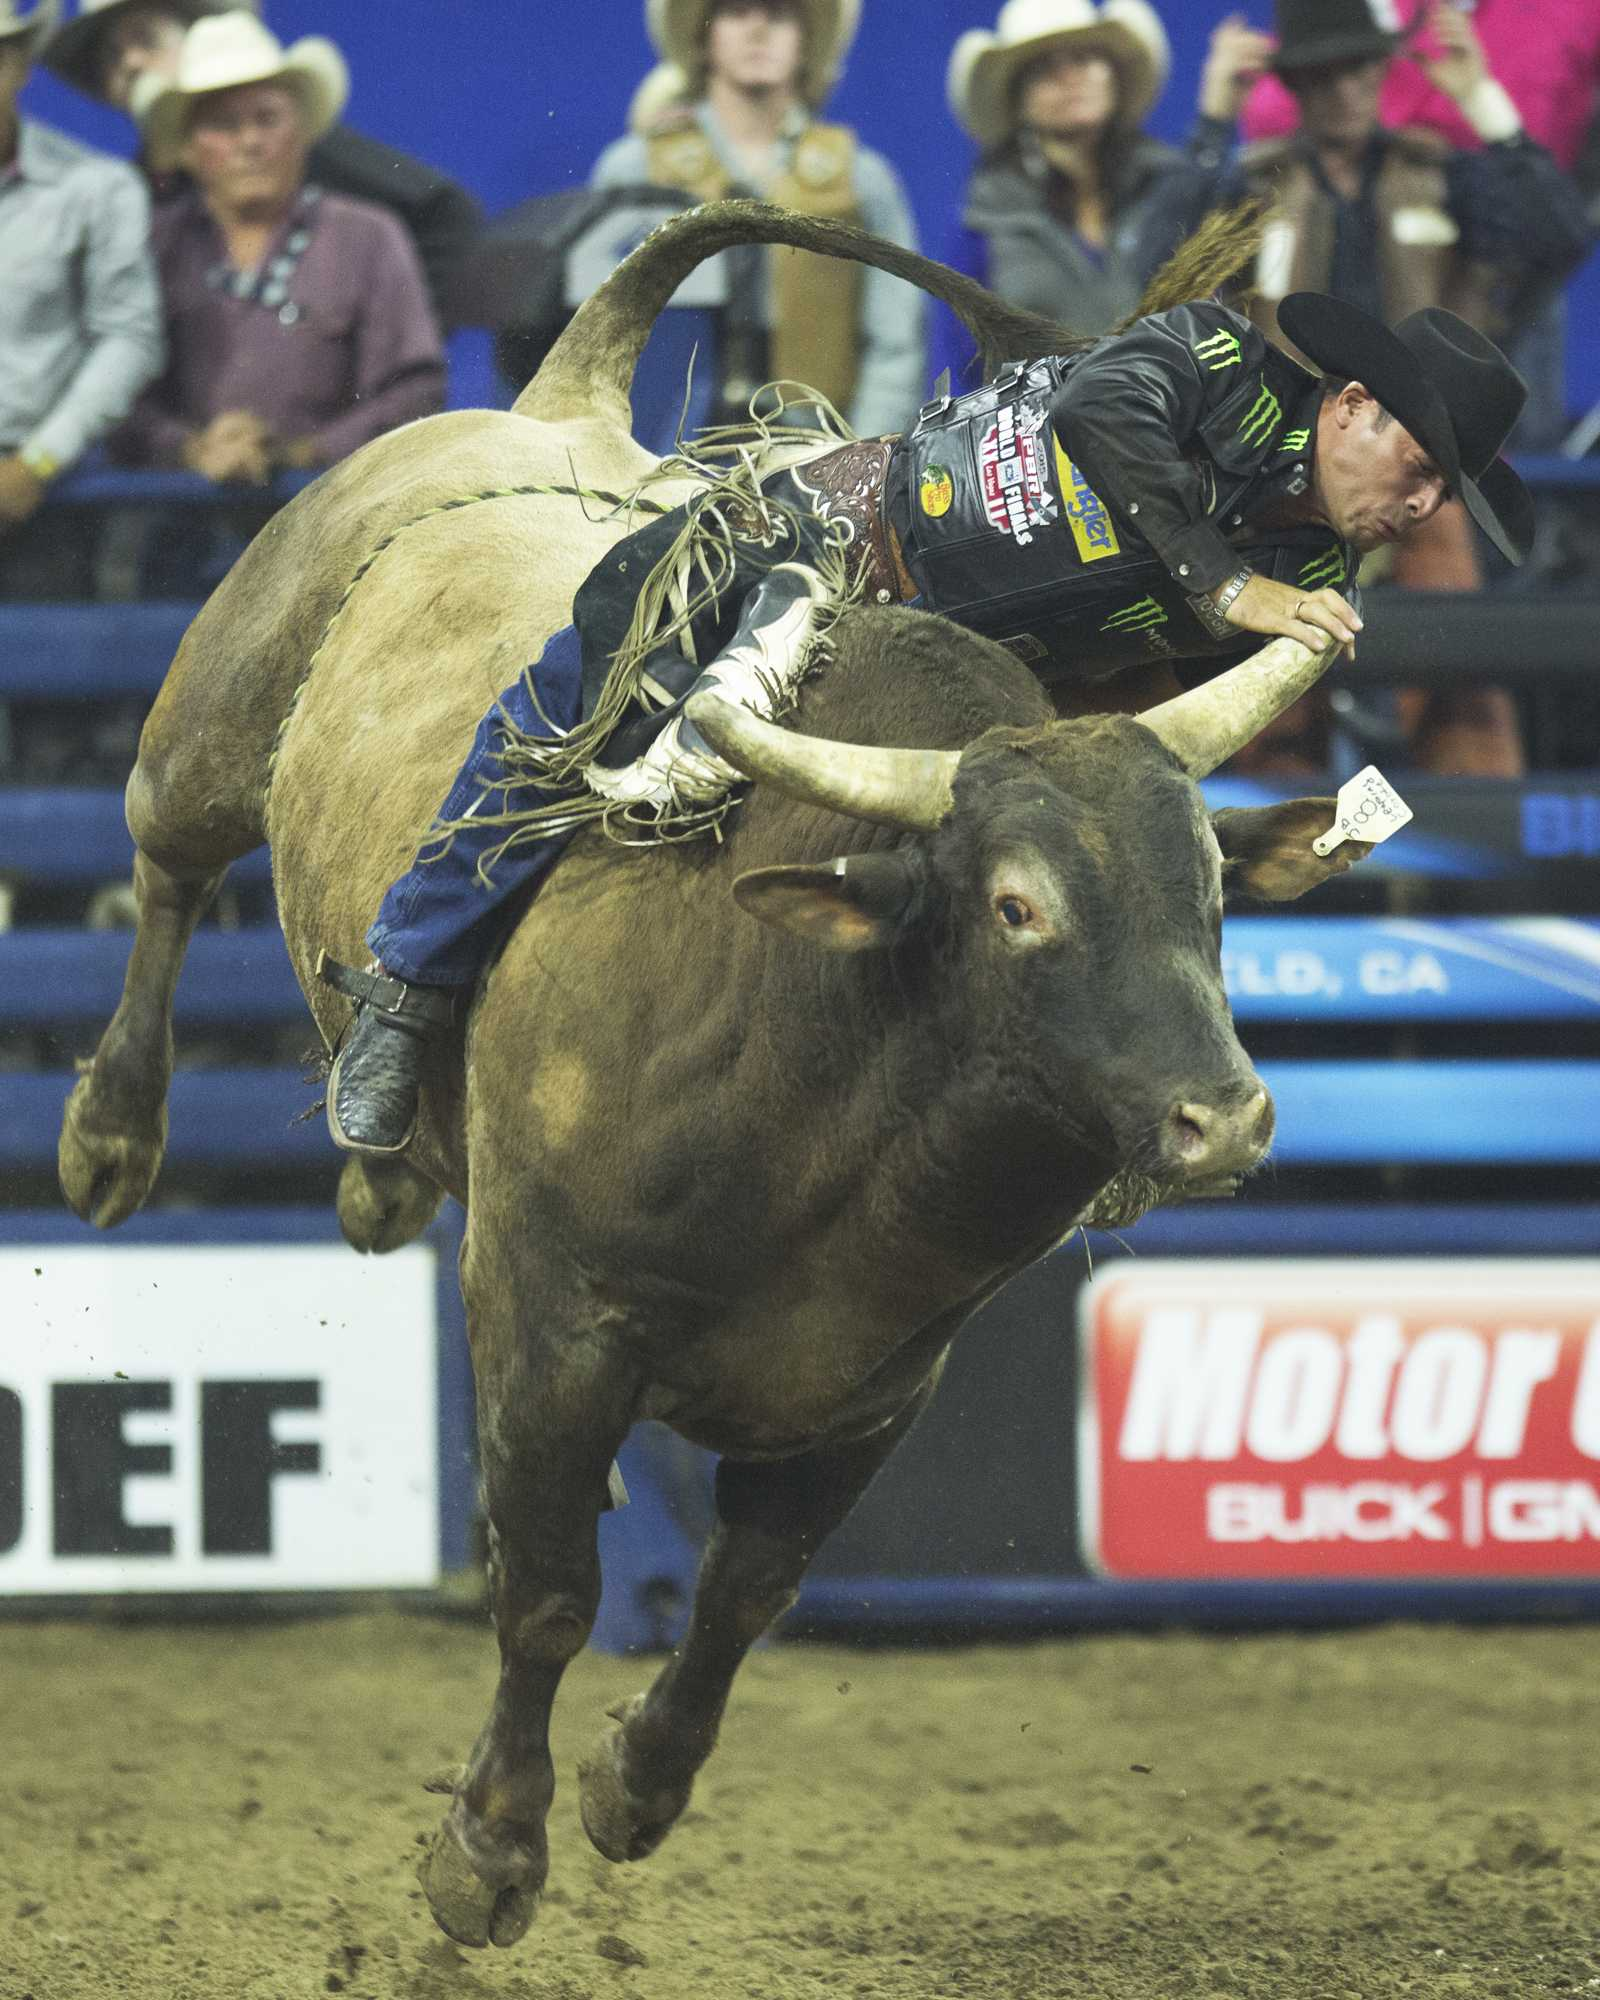 Robson Palermo taps the horn of Leaping Coyote during his ride at the Bakersfield PBR event at Rabobank Arena on Saturday, Nov. 21.